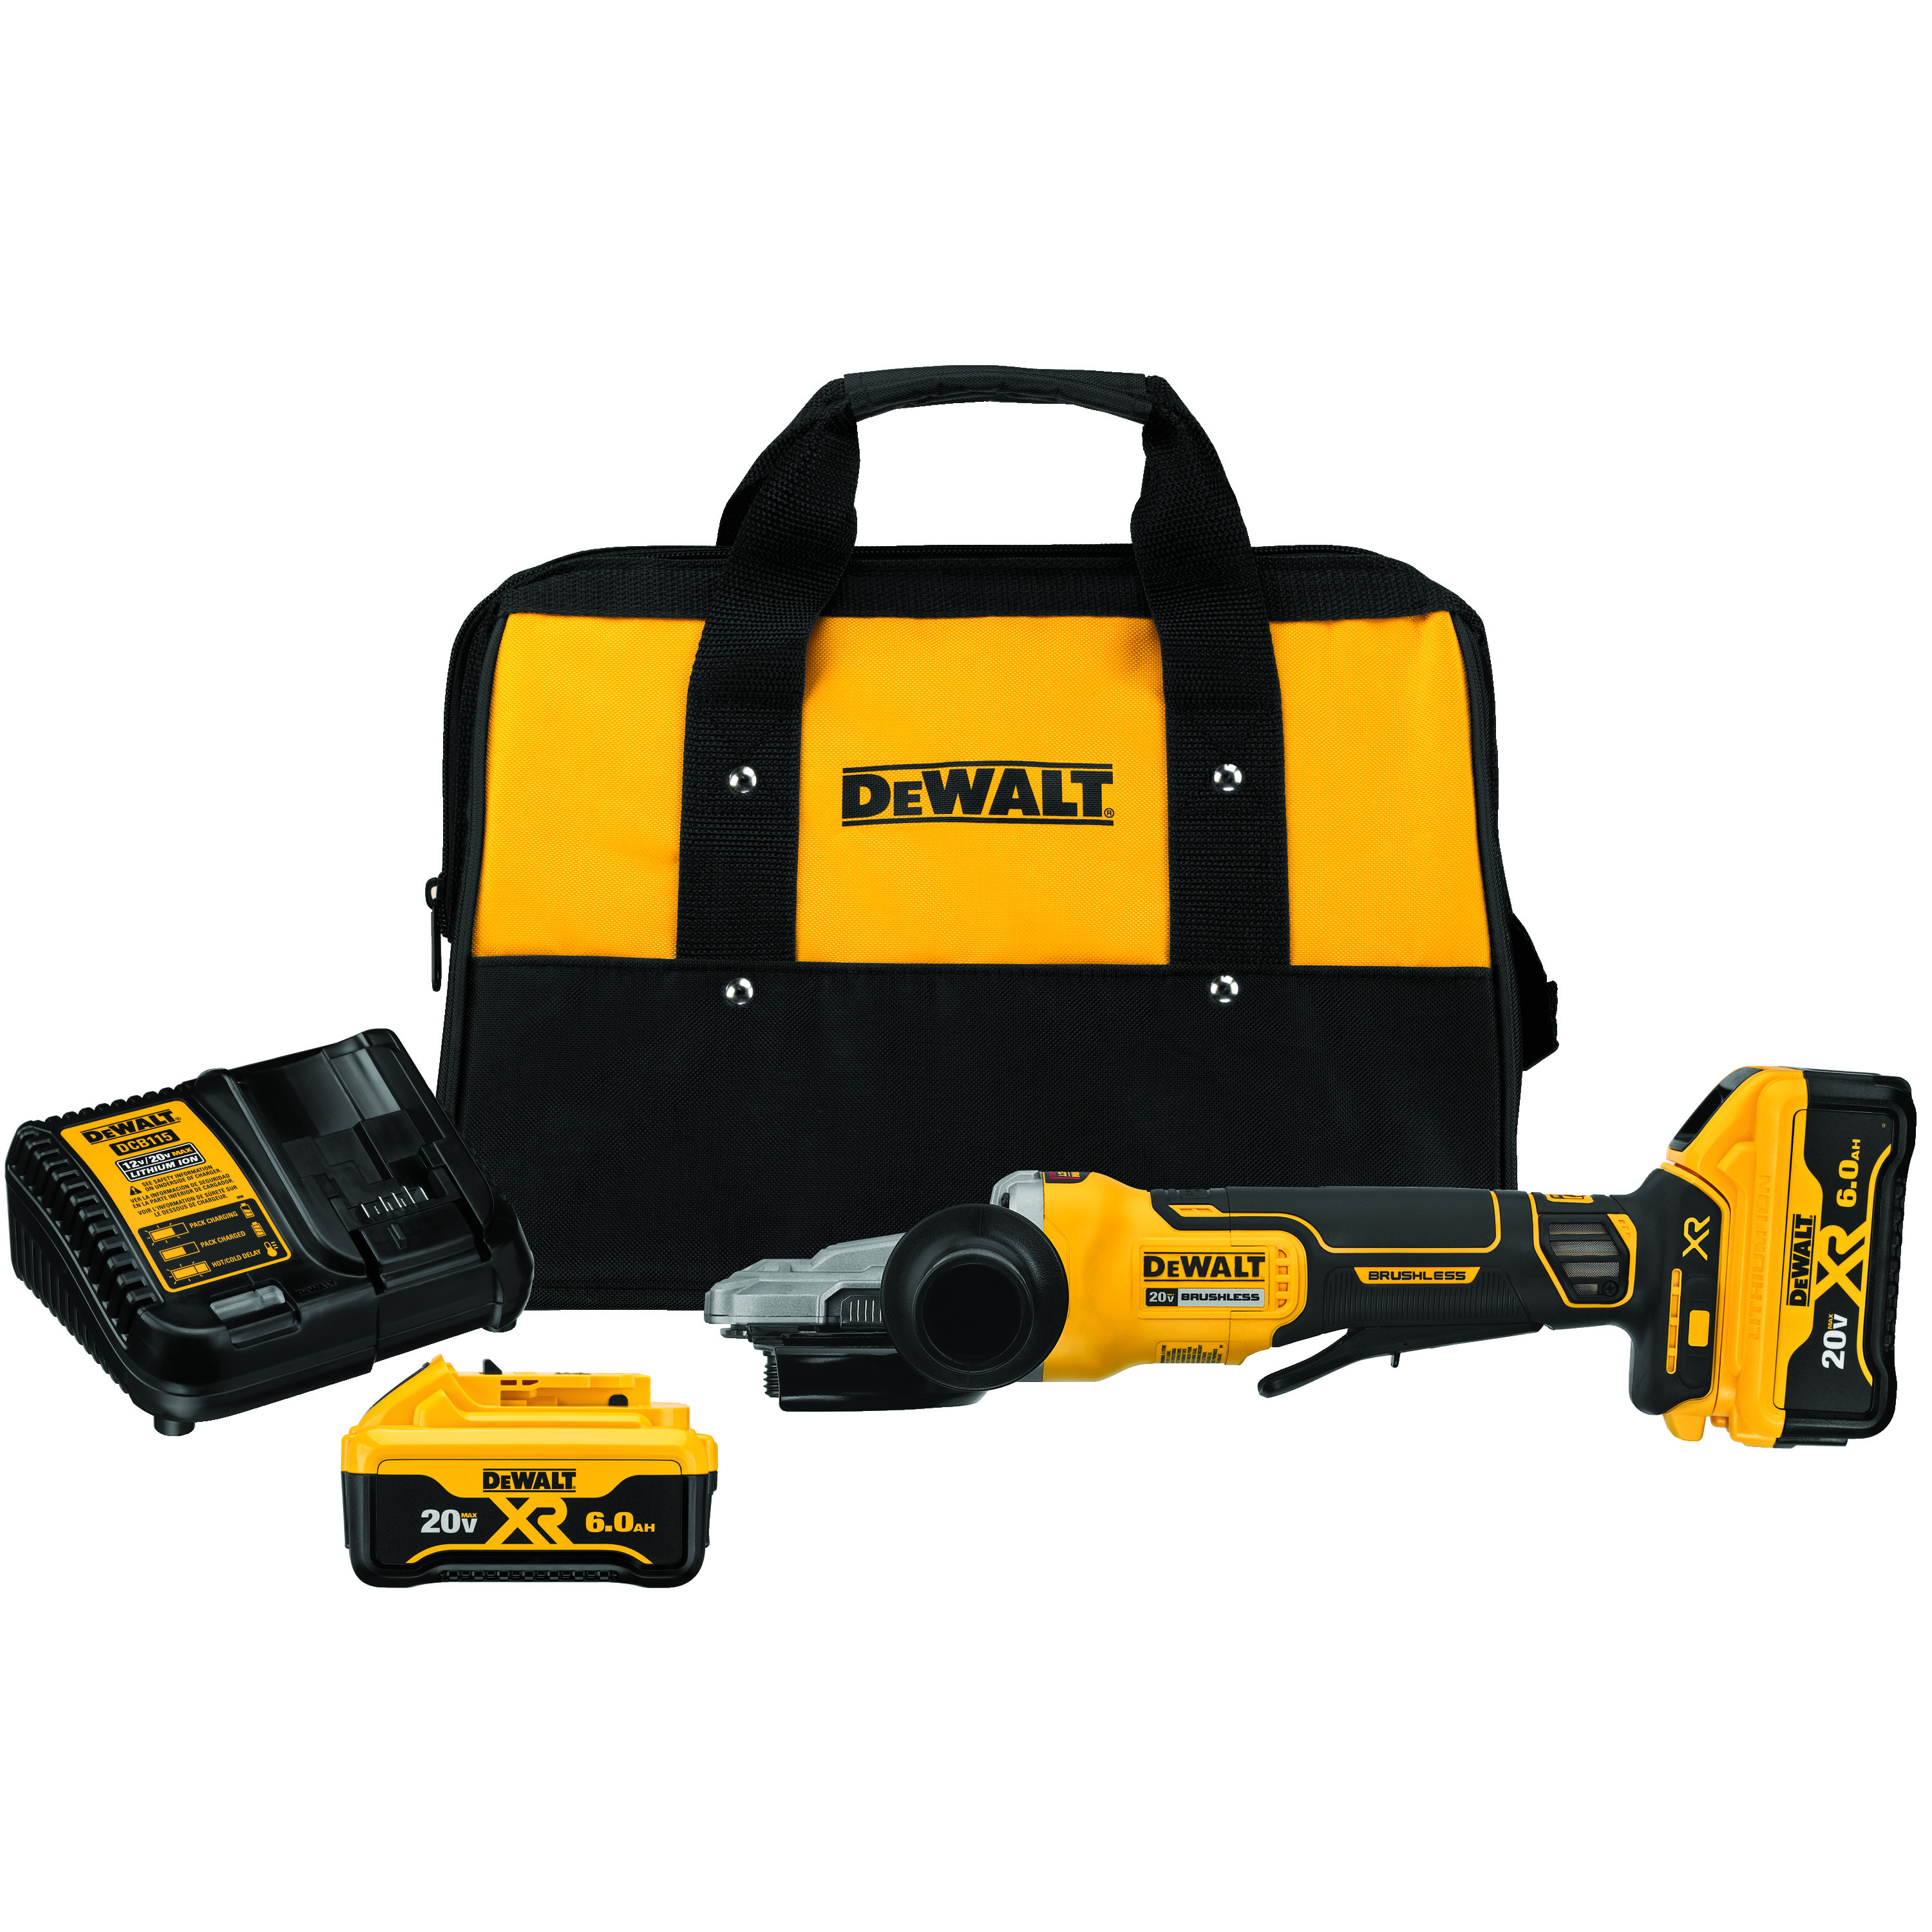 DeWALT® DCG413FR2 Small Angle Grinder Kit With Kickback Brake, 5 in Dia Wheel, 20 VDC, Lithium-Ion Battery, 1 Batteries, Flathead Paddle Switch